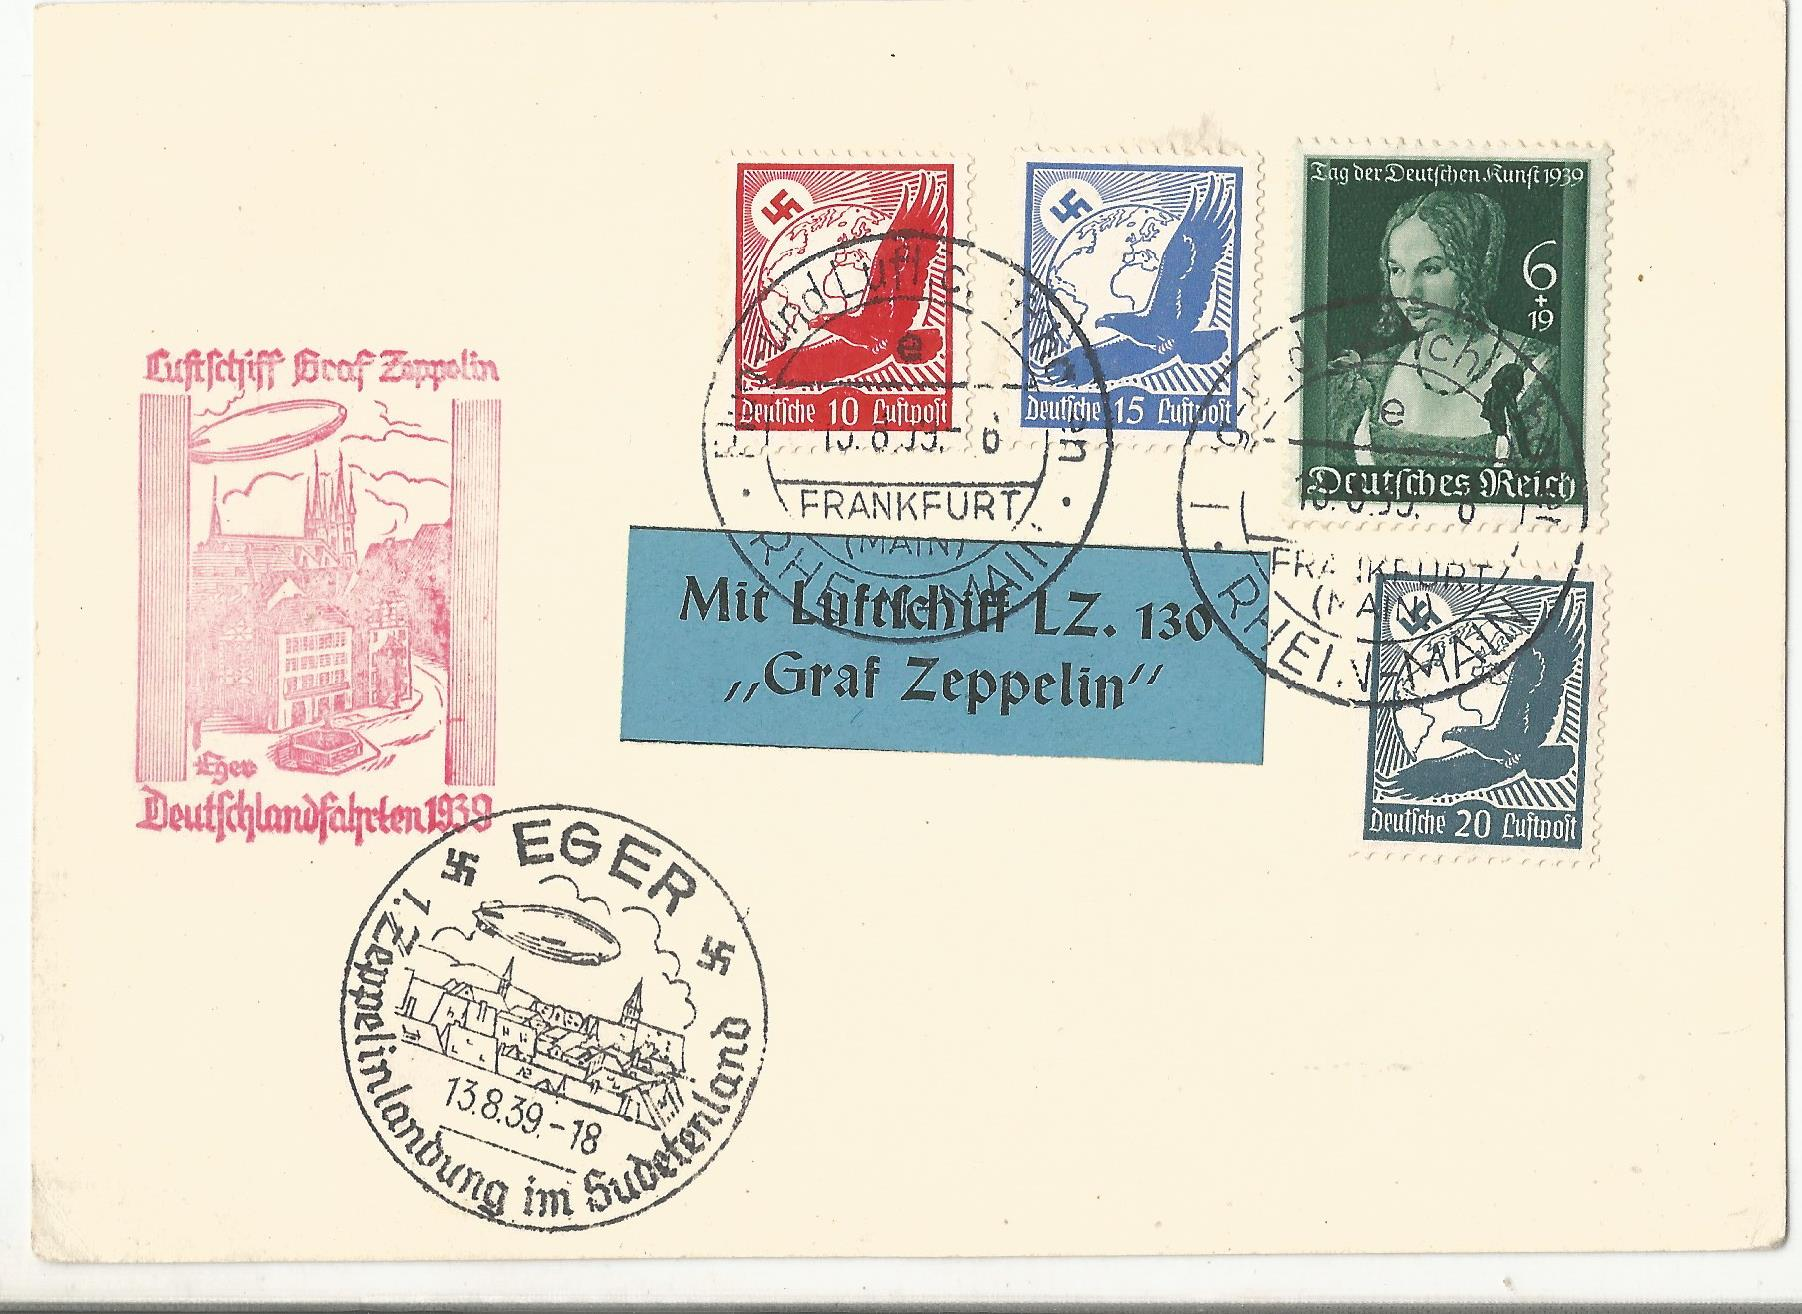 Lot 55 - 1939 LZ130 Graf Zeppelin flown cover Frankfurt postmarks and Eger Czech Republic mark. With LZ130.